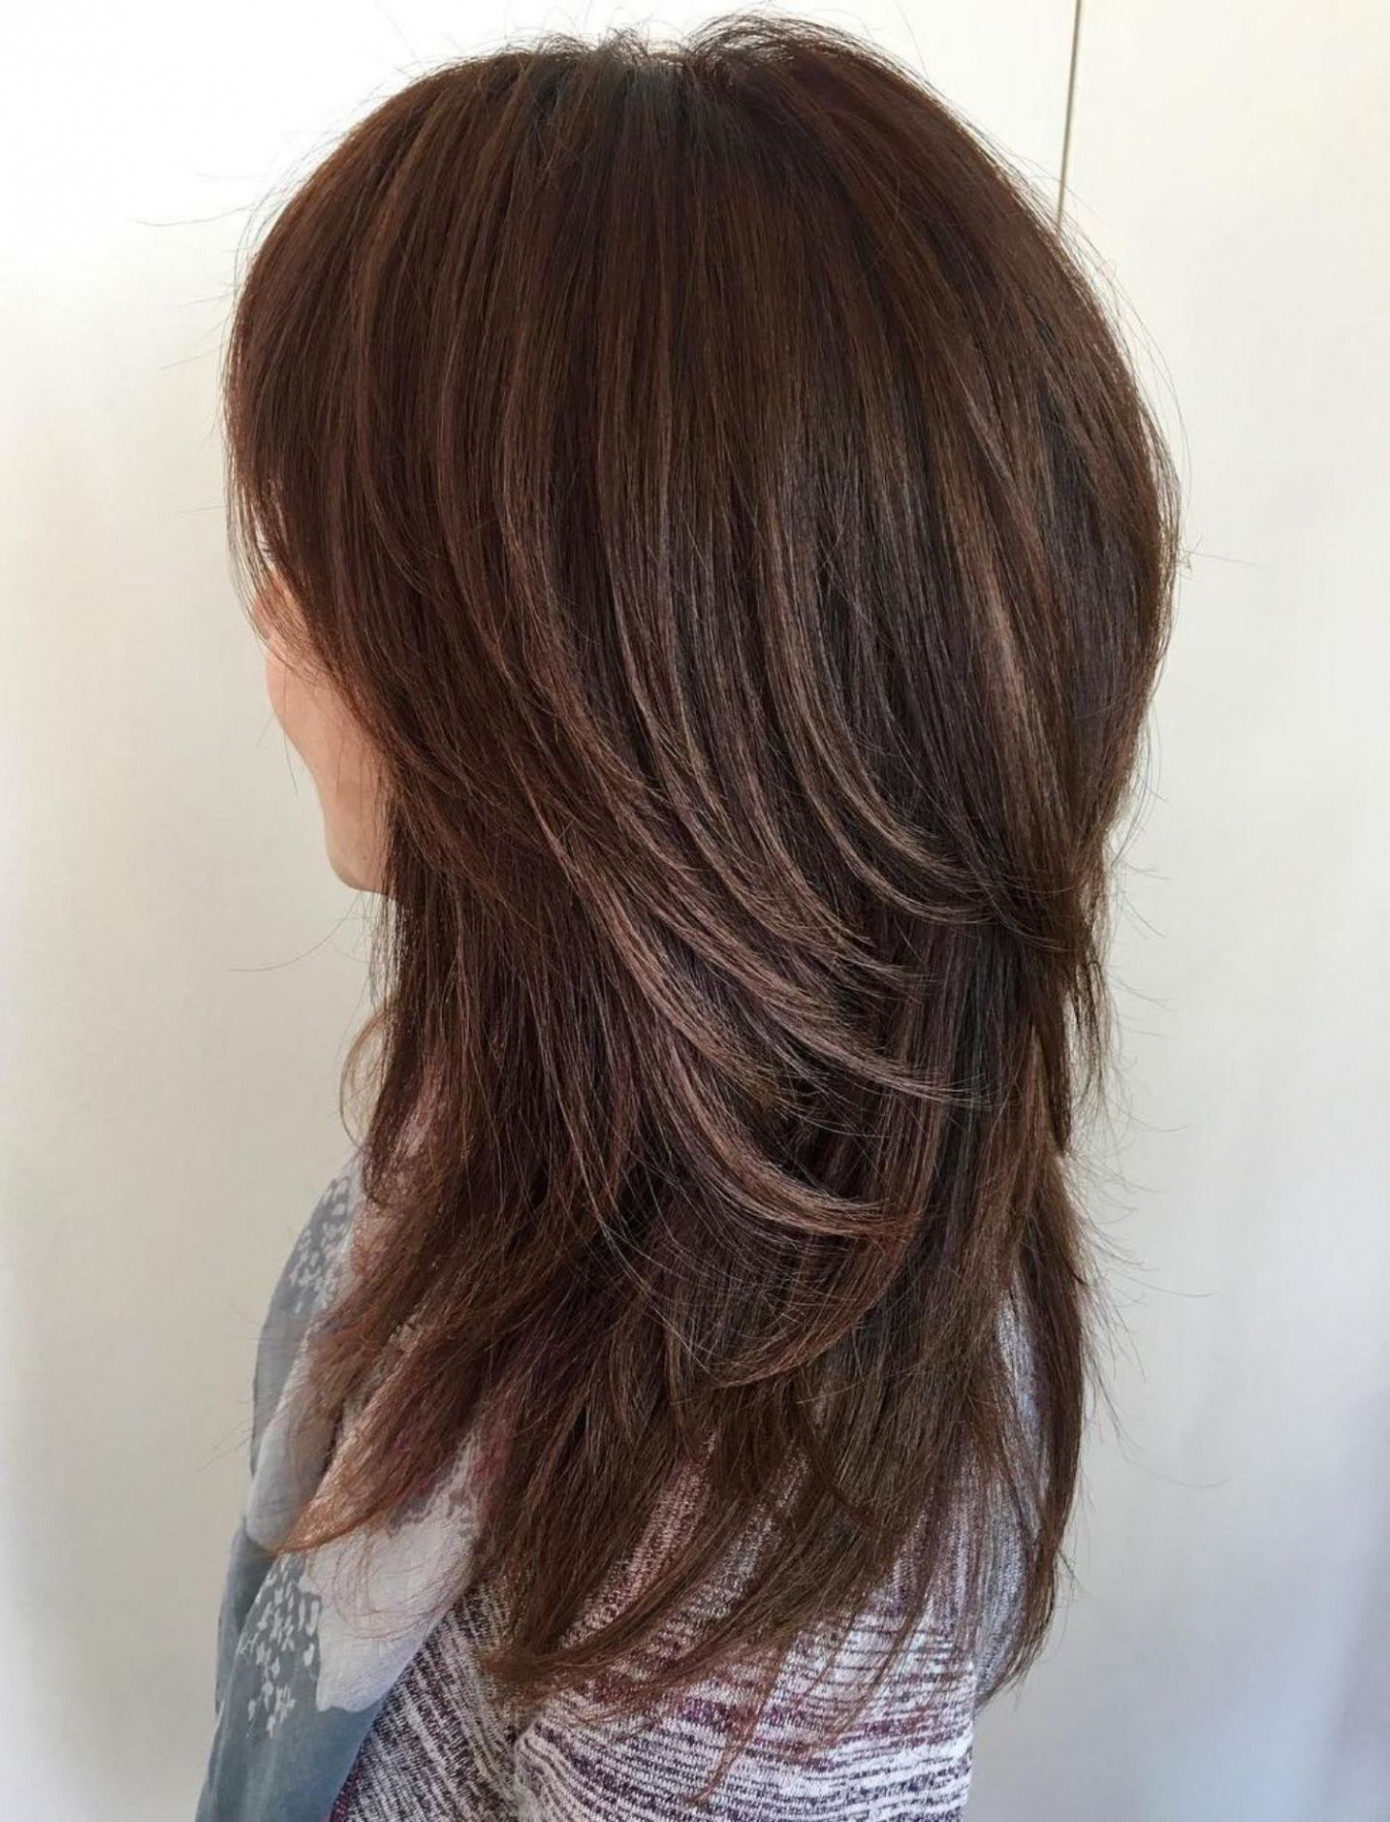 Pin on hair long shaggy hairstyles for thick hair